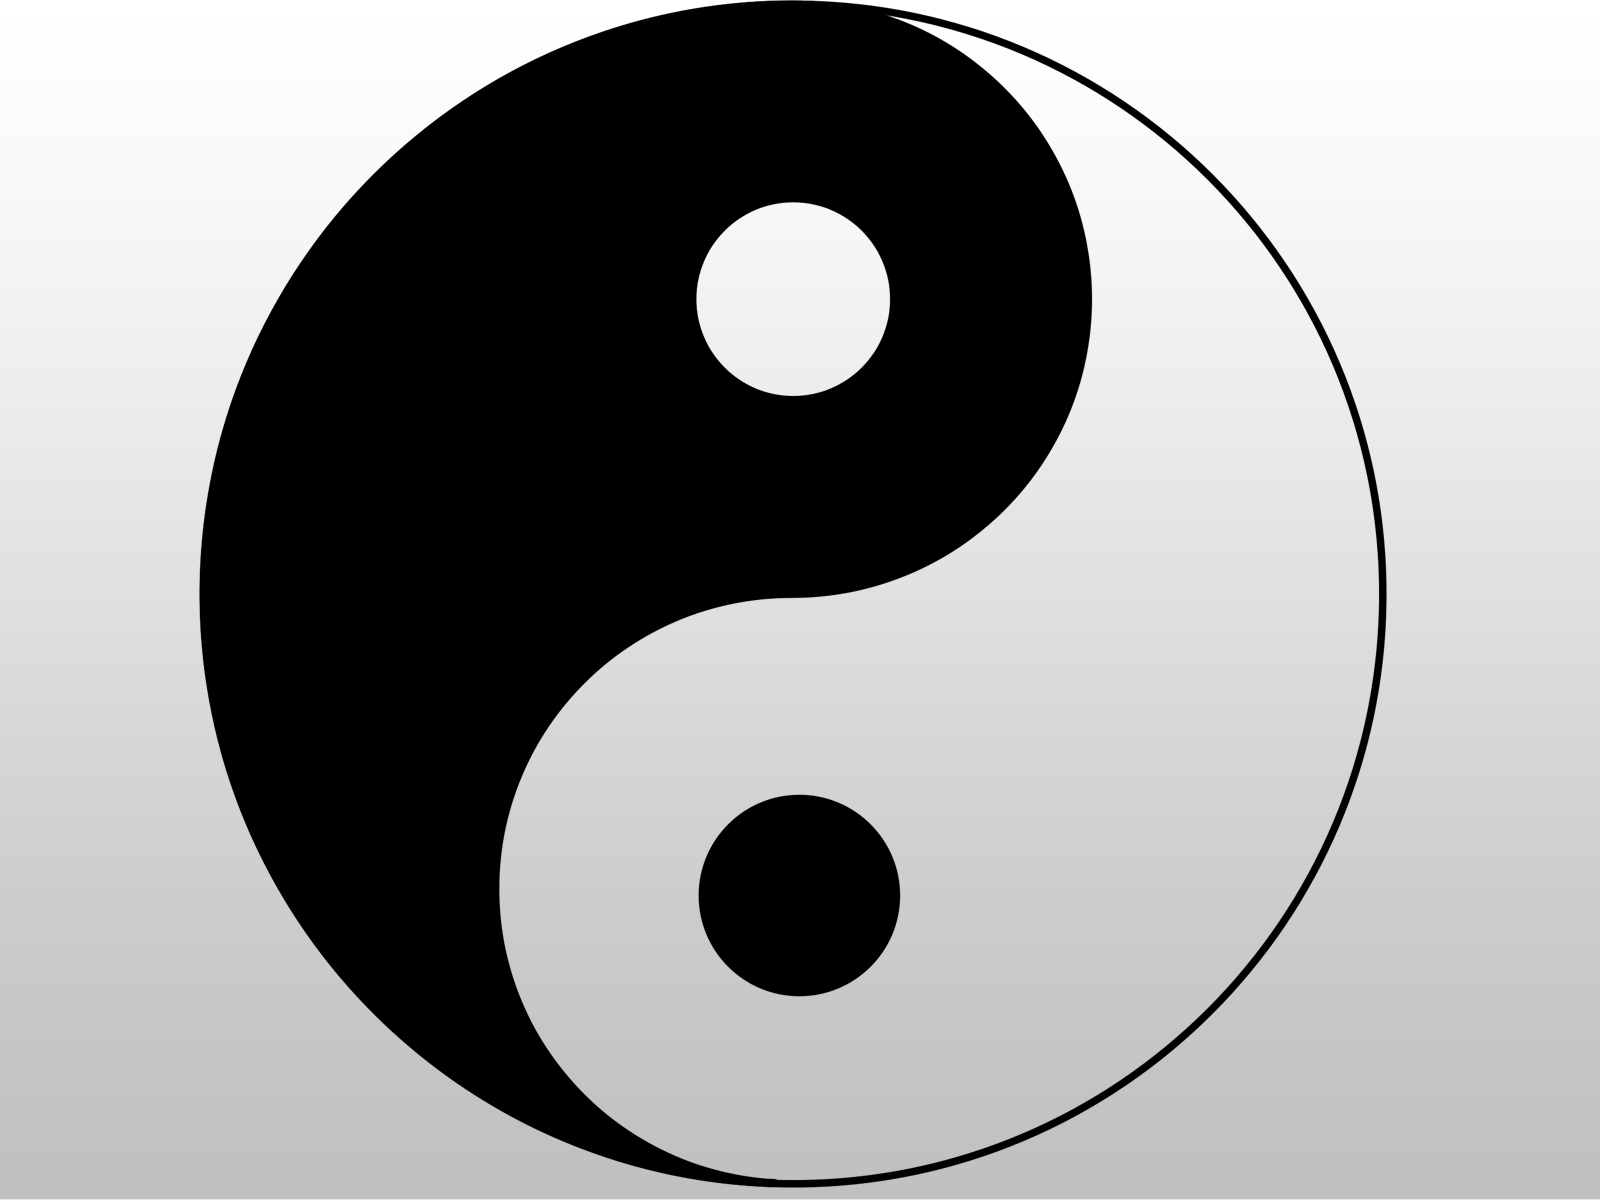 Yin yang design clipart best for Architecture yin yang